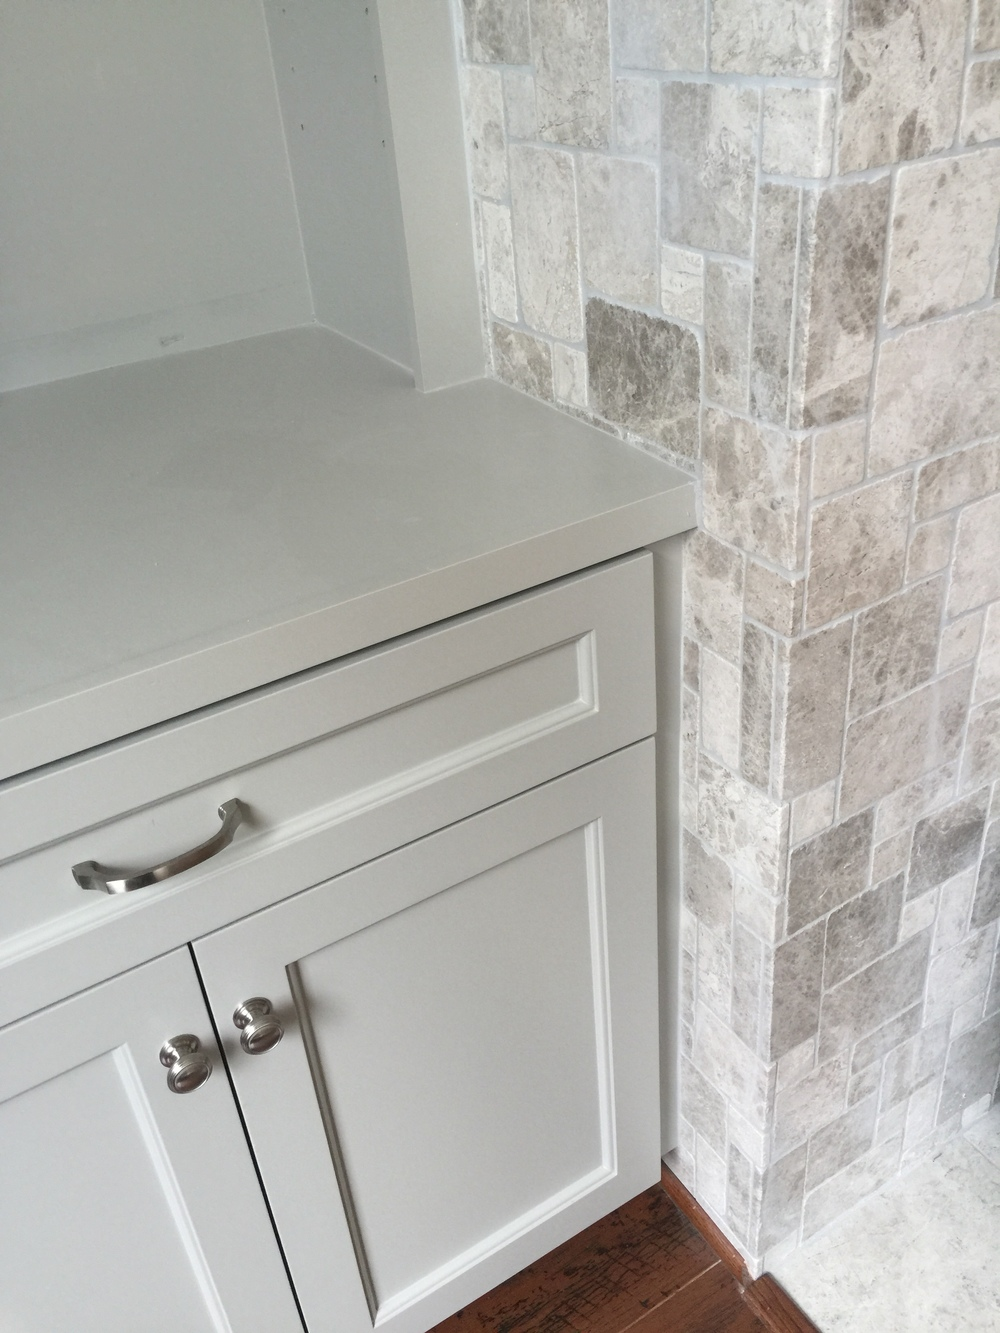 Tile returning to wall on sides - Detail | Interior Designer: Carla Aston